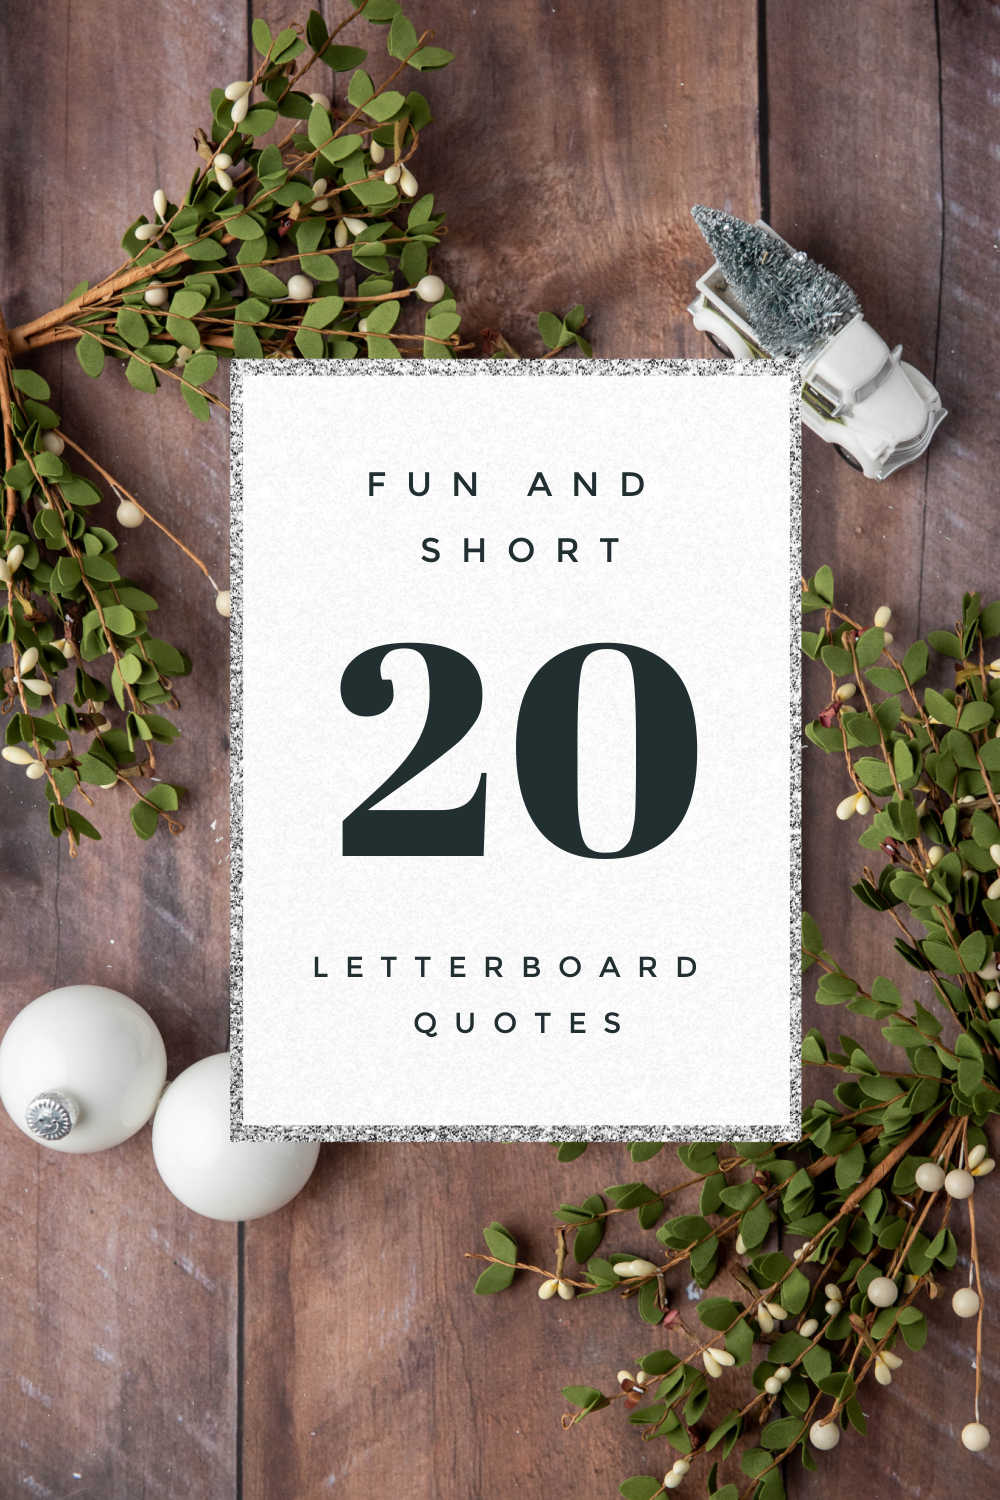 20 FUN AND SHORT LETTERBOARD QUOTES